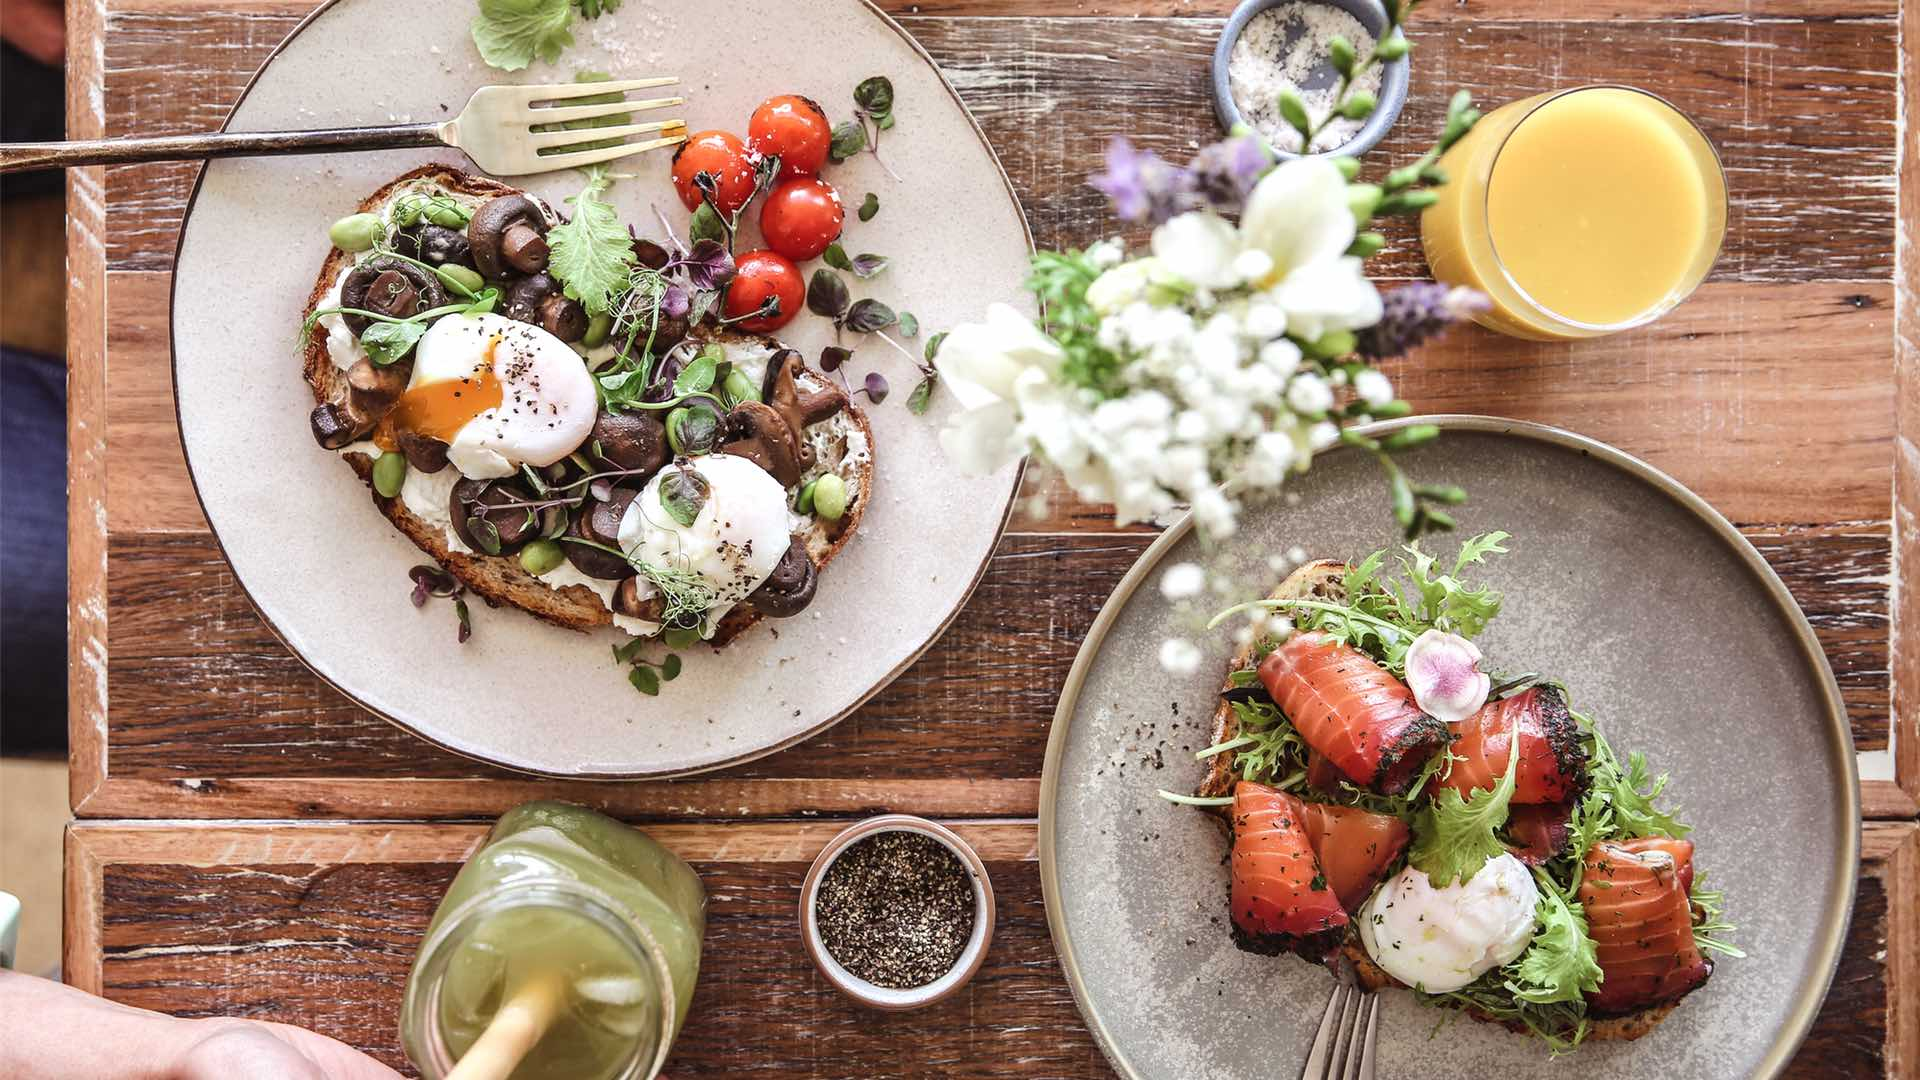 Heart Cafe Is Bondi's New Non-Profit Cafe Serving Up Healthy Brunch Fare and Training Disadvantaged Youth